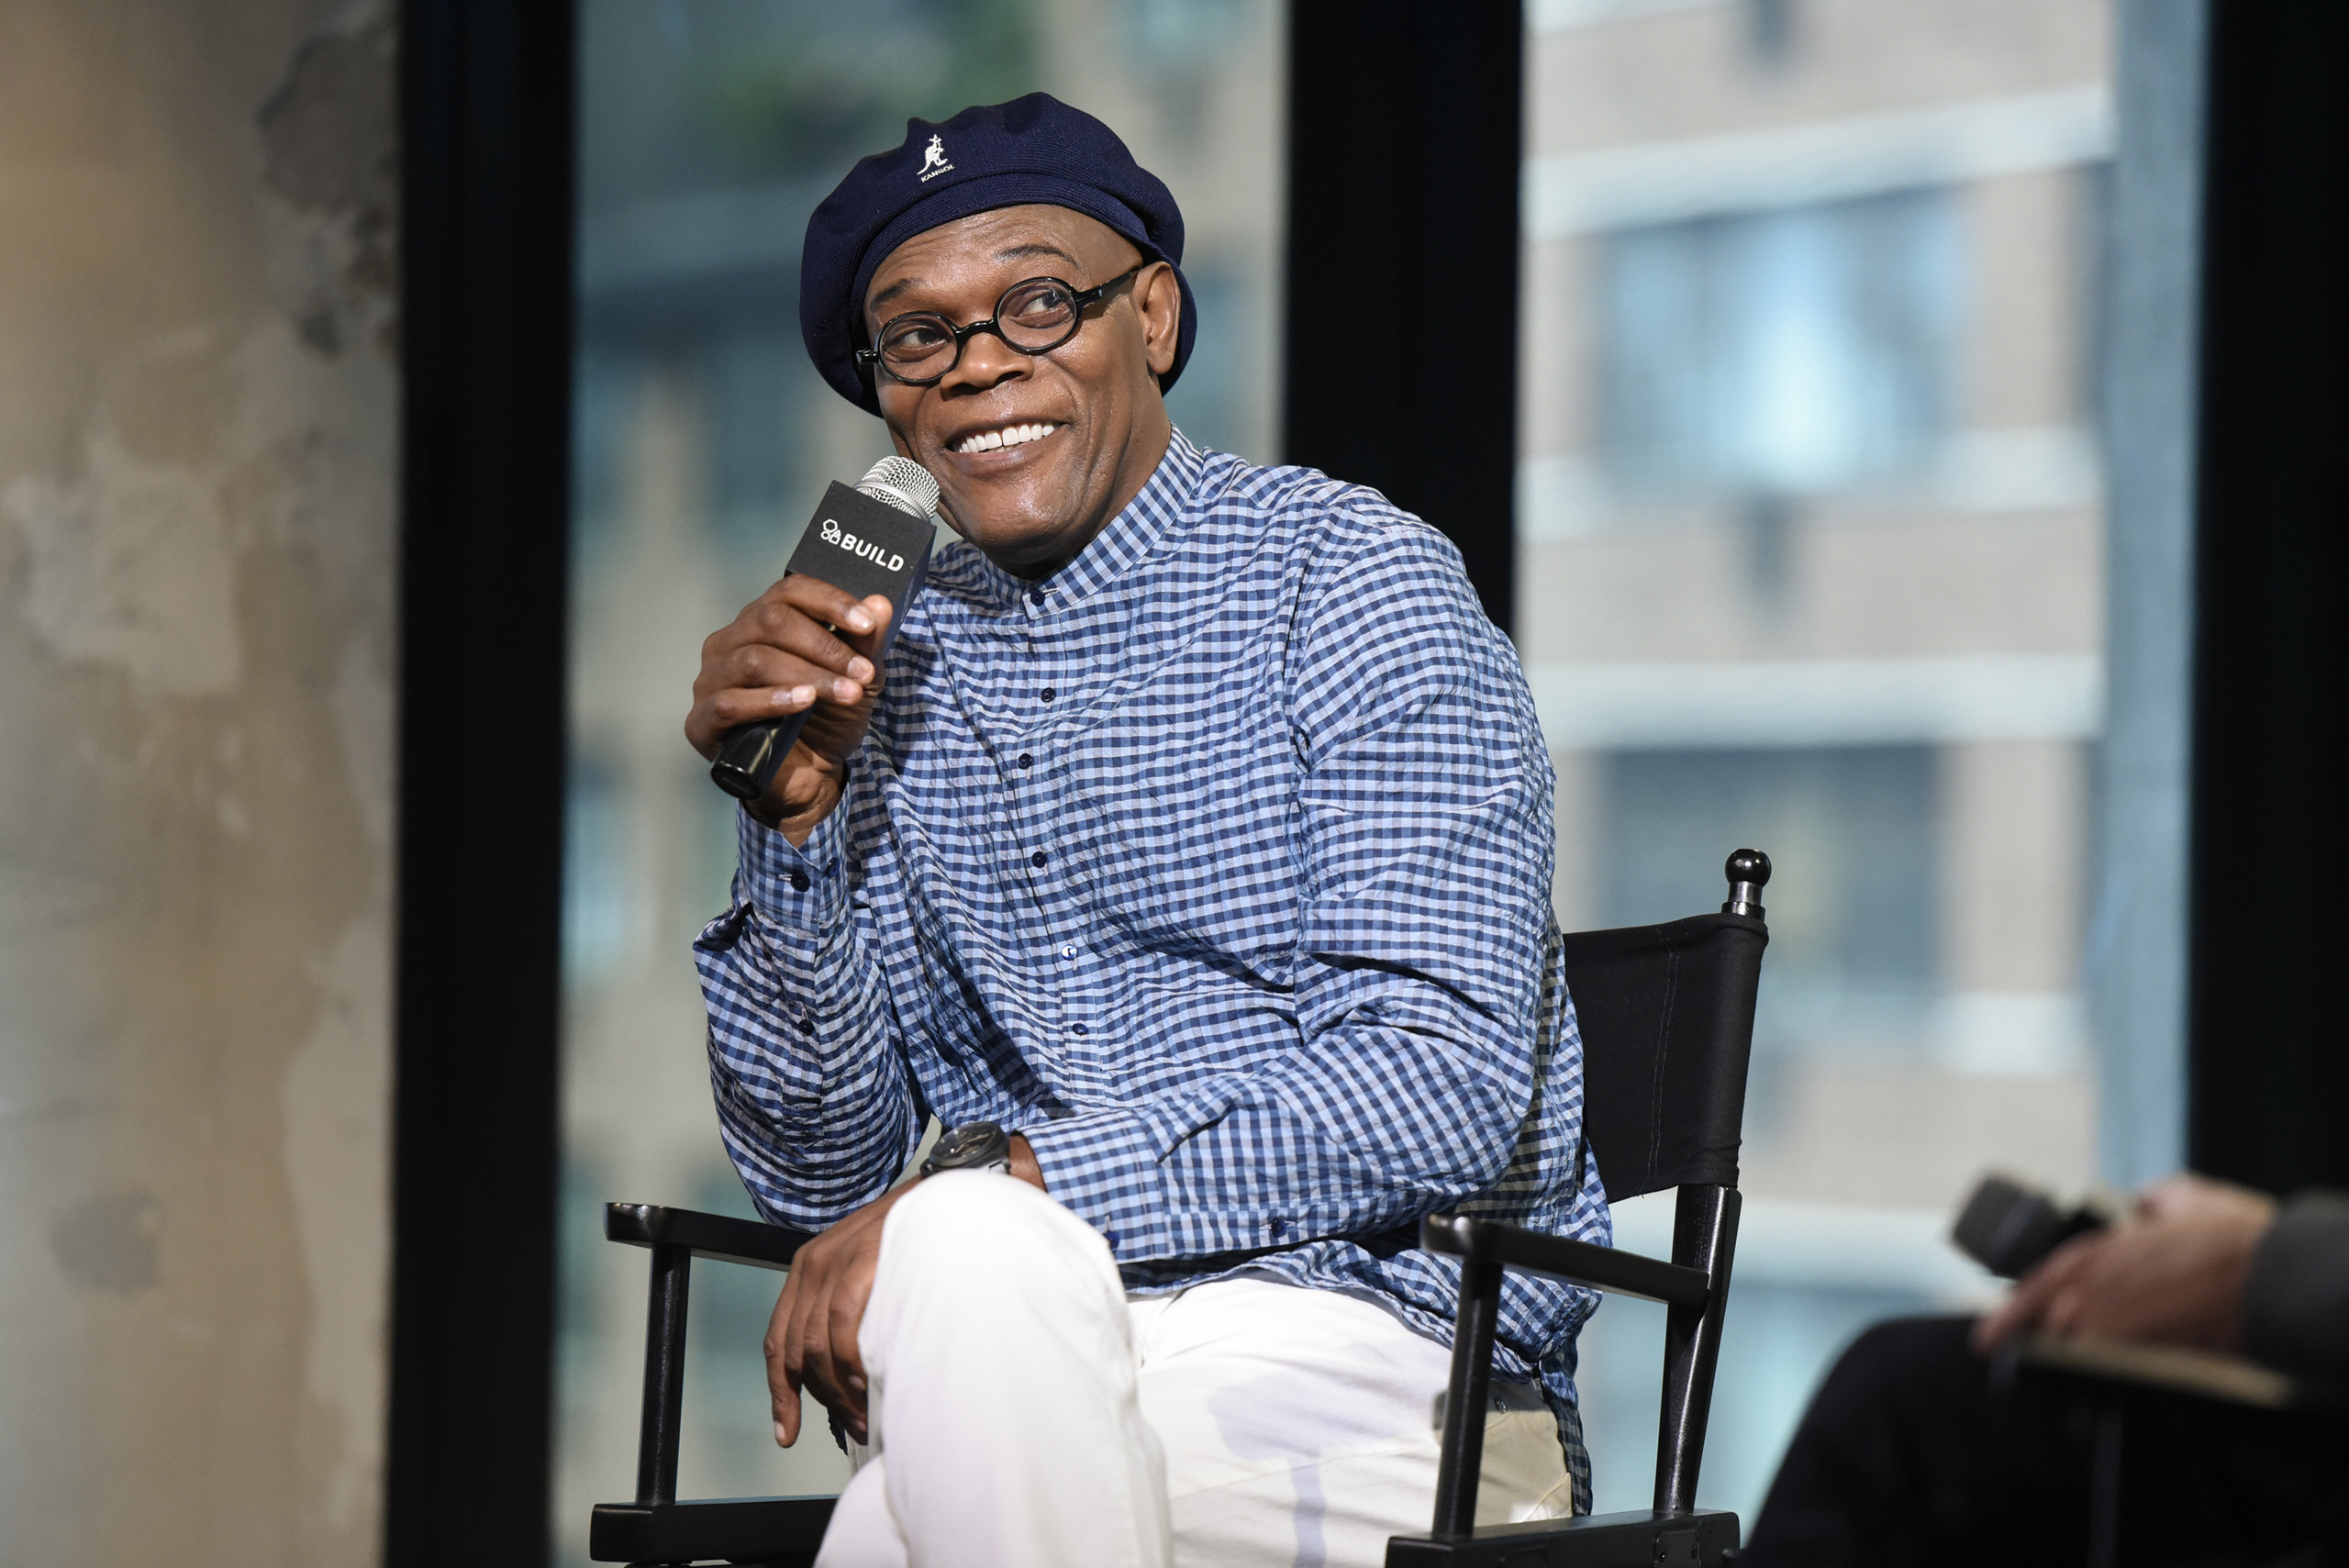 Samuel L. Jackson attends AOL Build Presents - Samuel L. Jackson from the new movie  The Legend Of Tarzan  at AOL Studios in New York City on June 29, 2016.